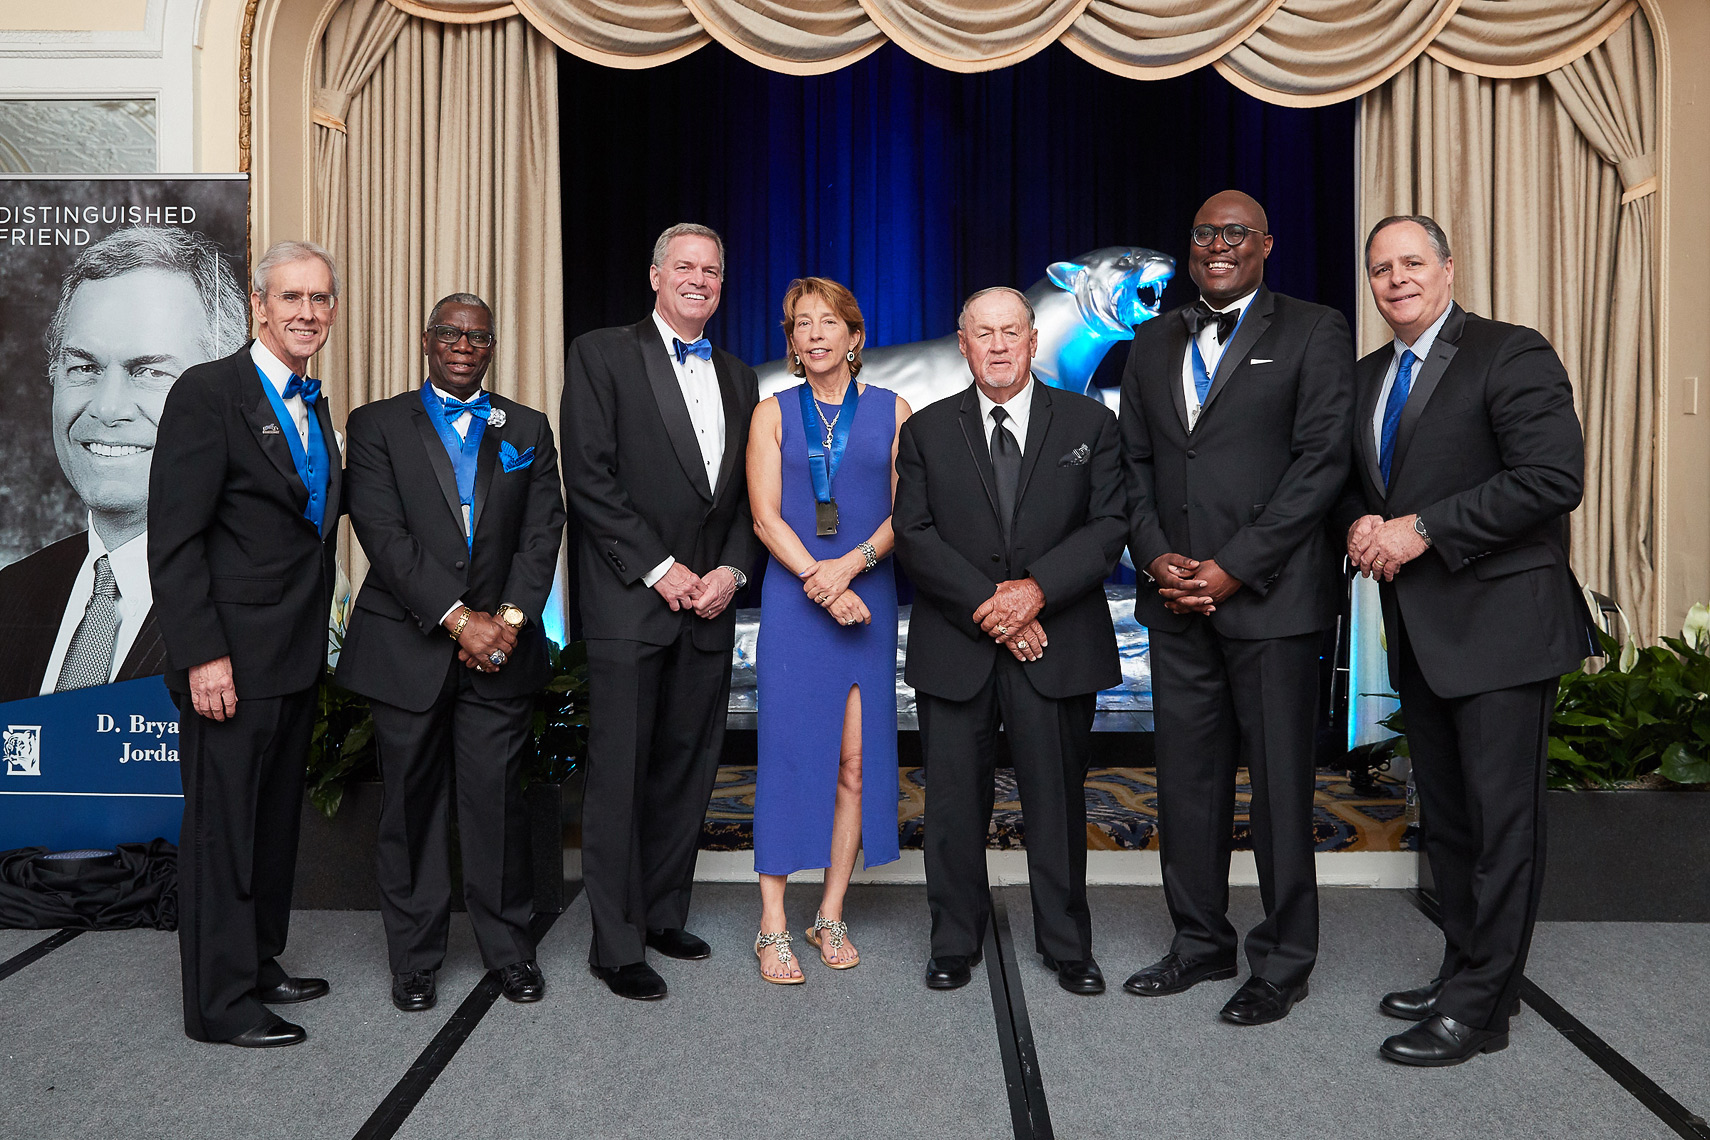 ALUM_DAA_2019_Distinguished_Alumni_Awards_1420_TC_20190608